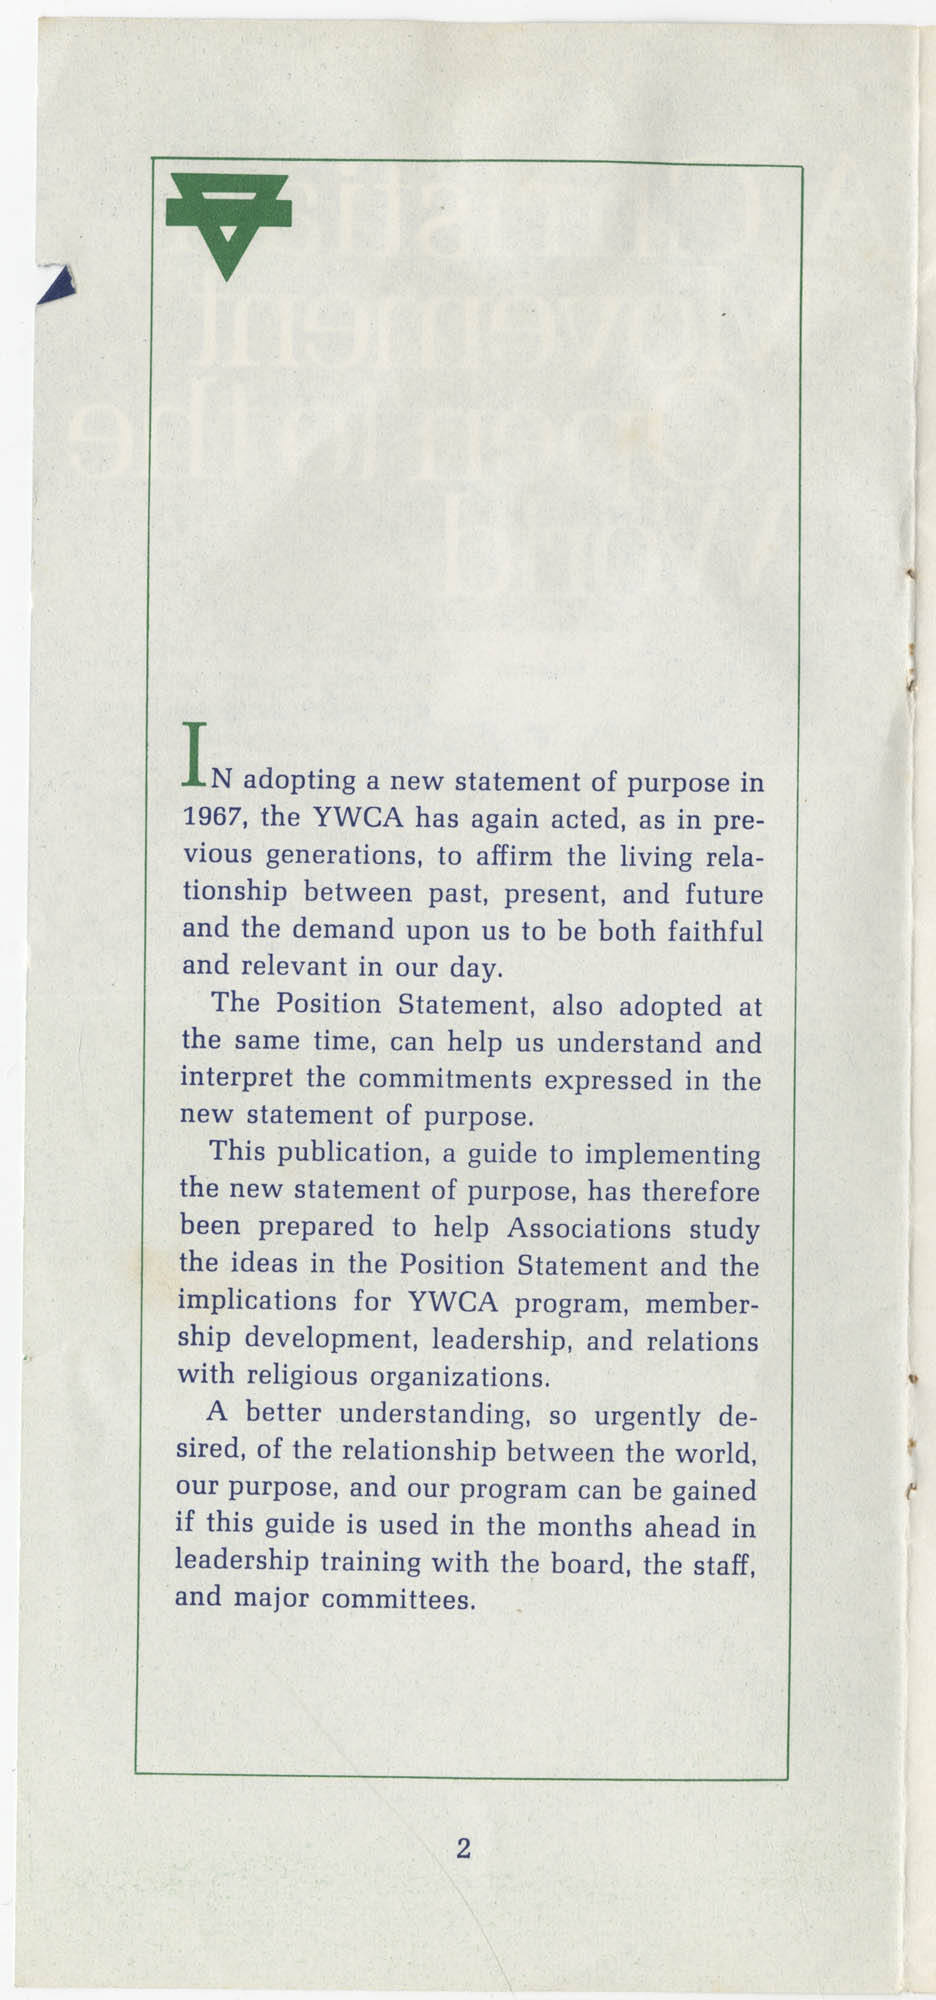 The Y.W.C.A.: A Christian Movement Open to the World, Page 2